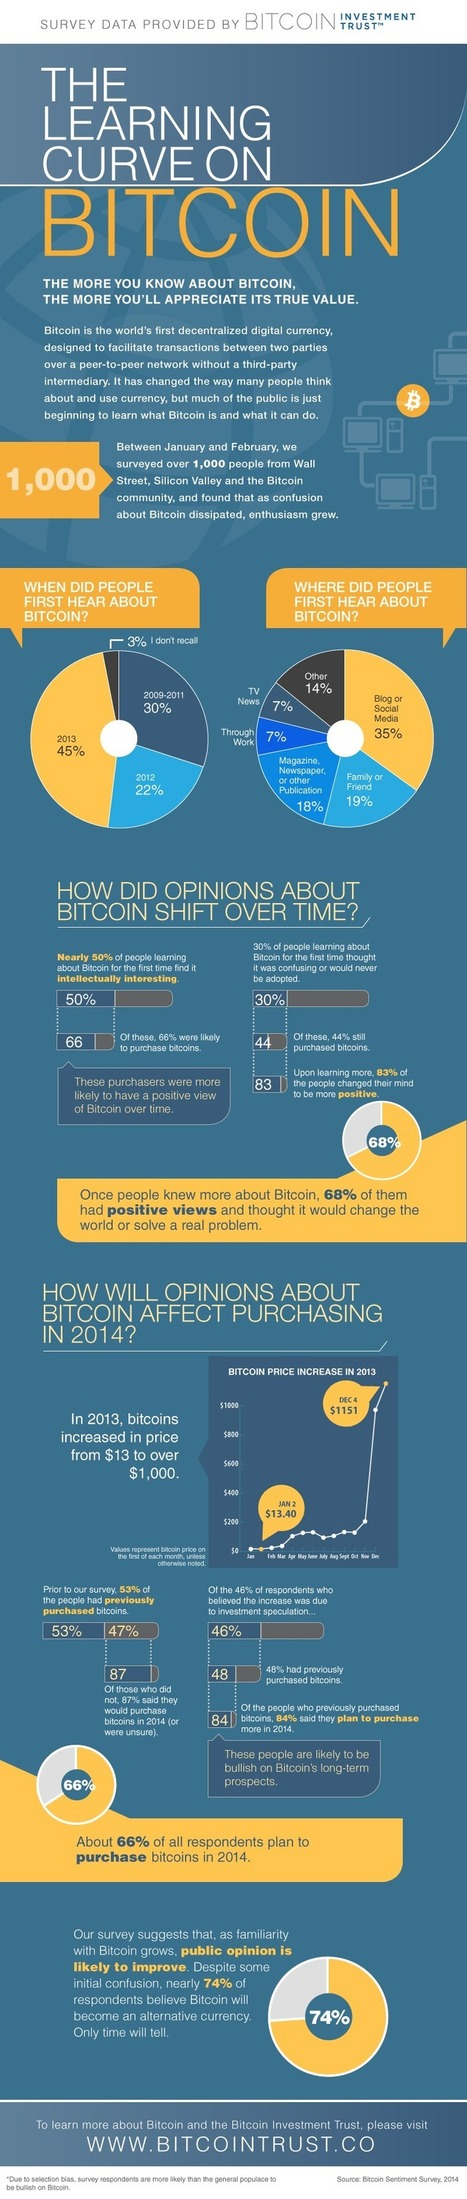 Survey Finds Silicon Valley, Wall Street Bullish on Bitcoin   Bitcoin and Virtual Currencies   Scoop.it